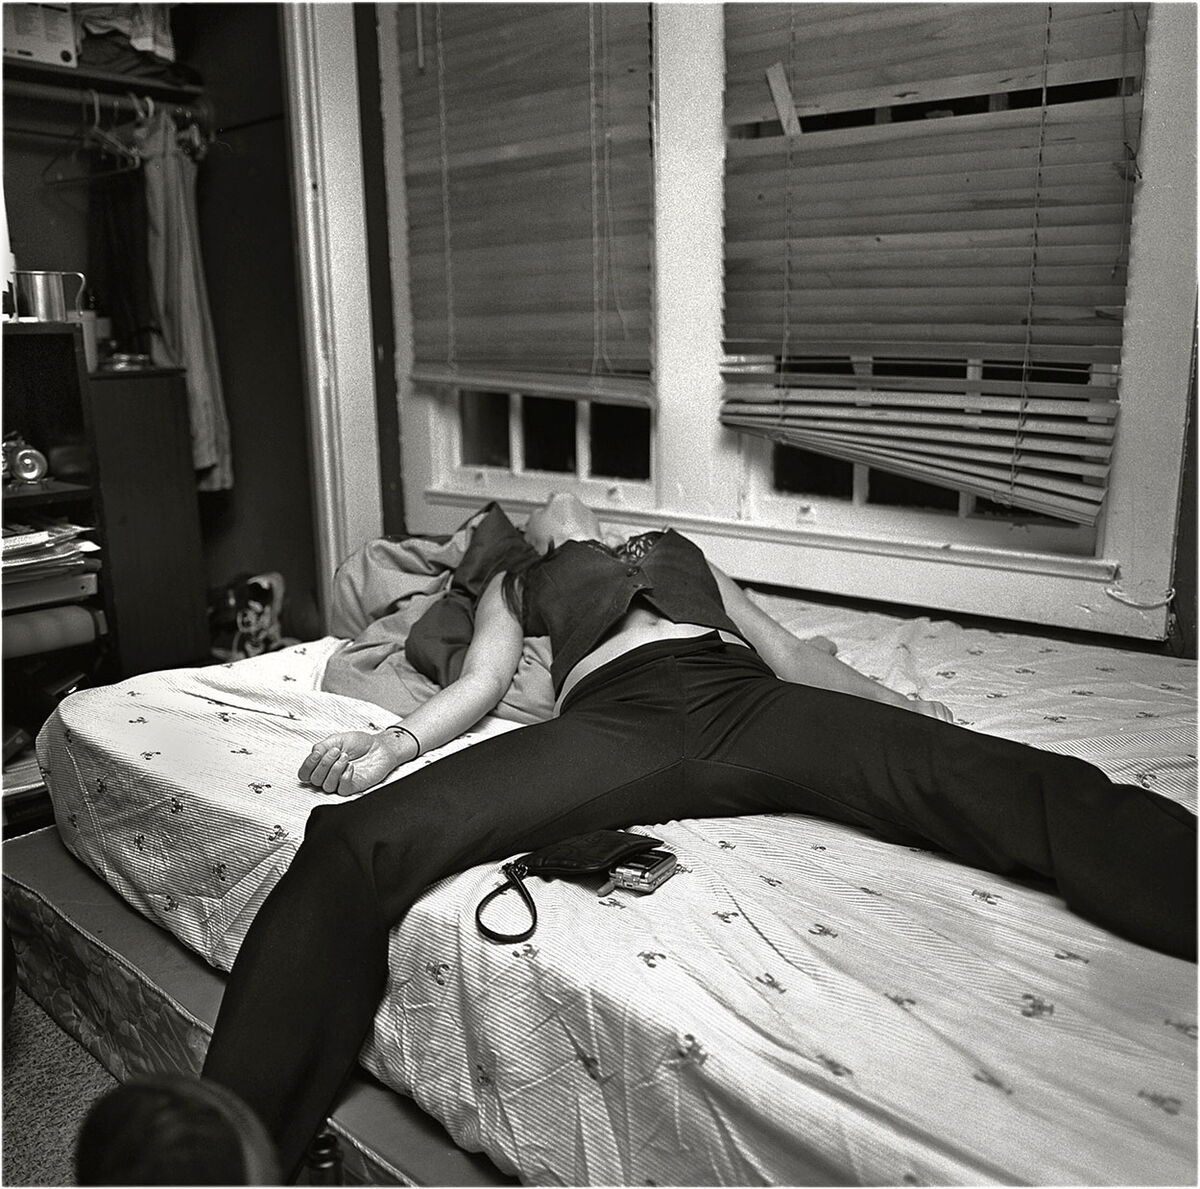 Andrew Moisey, image from The American Fraternity, 2000–2008. Courtesy of the artist.